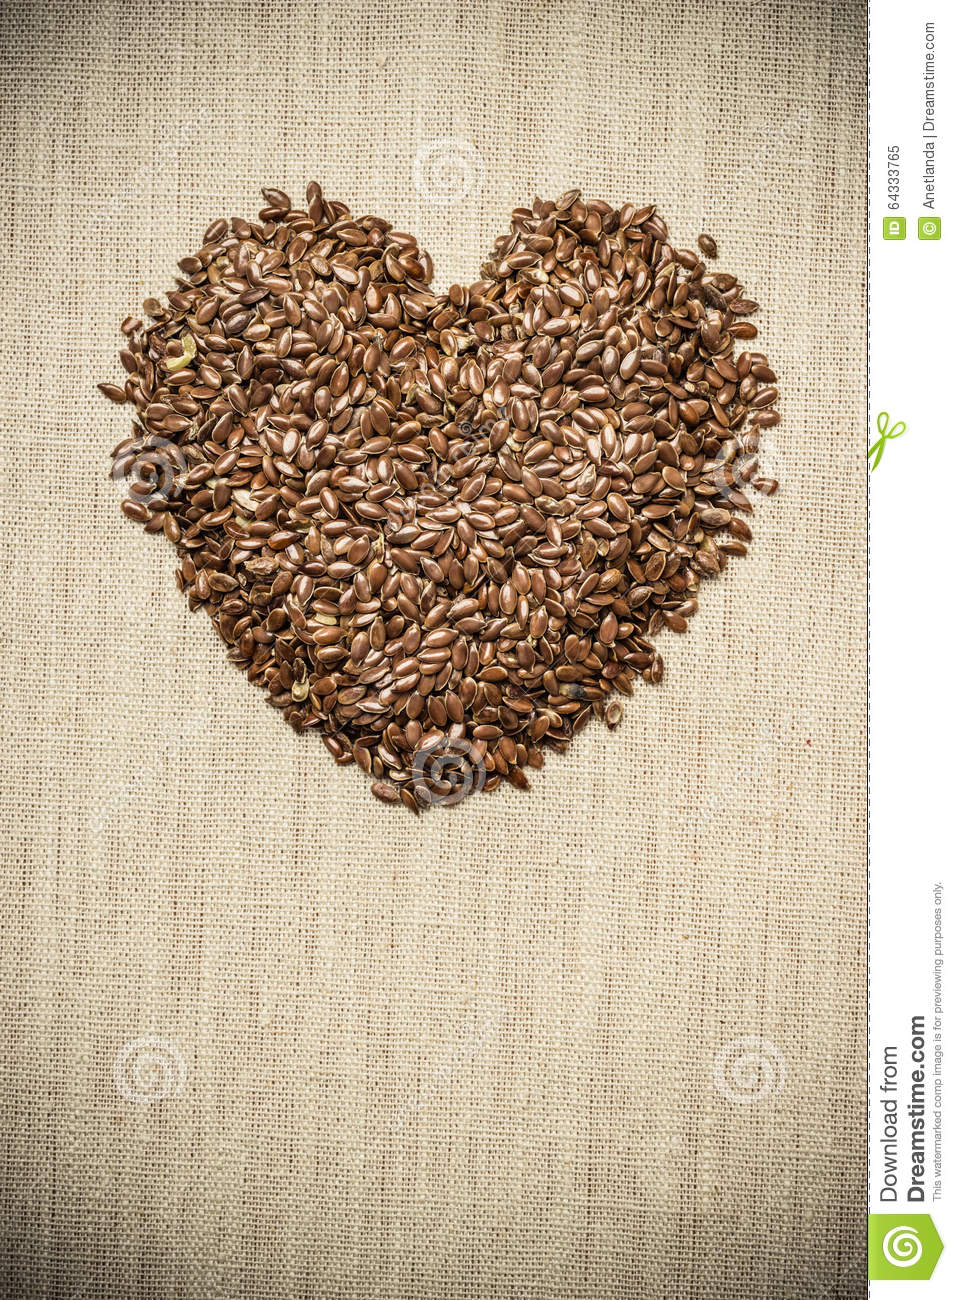 Raw flax seeds